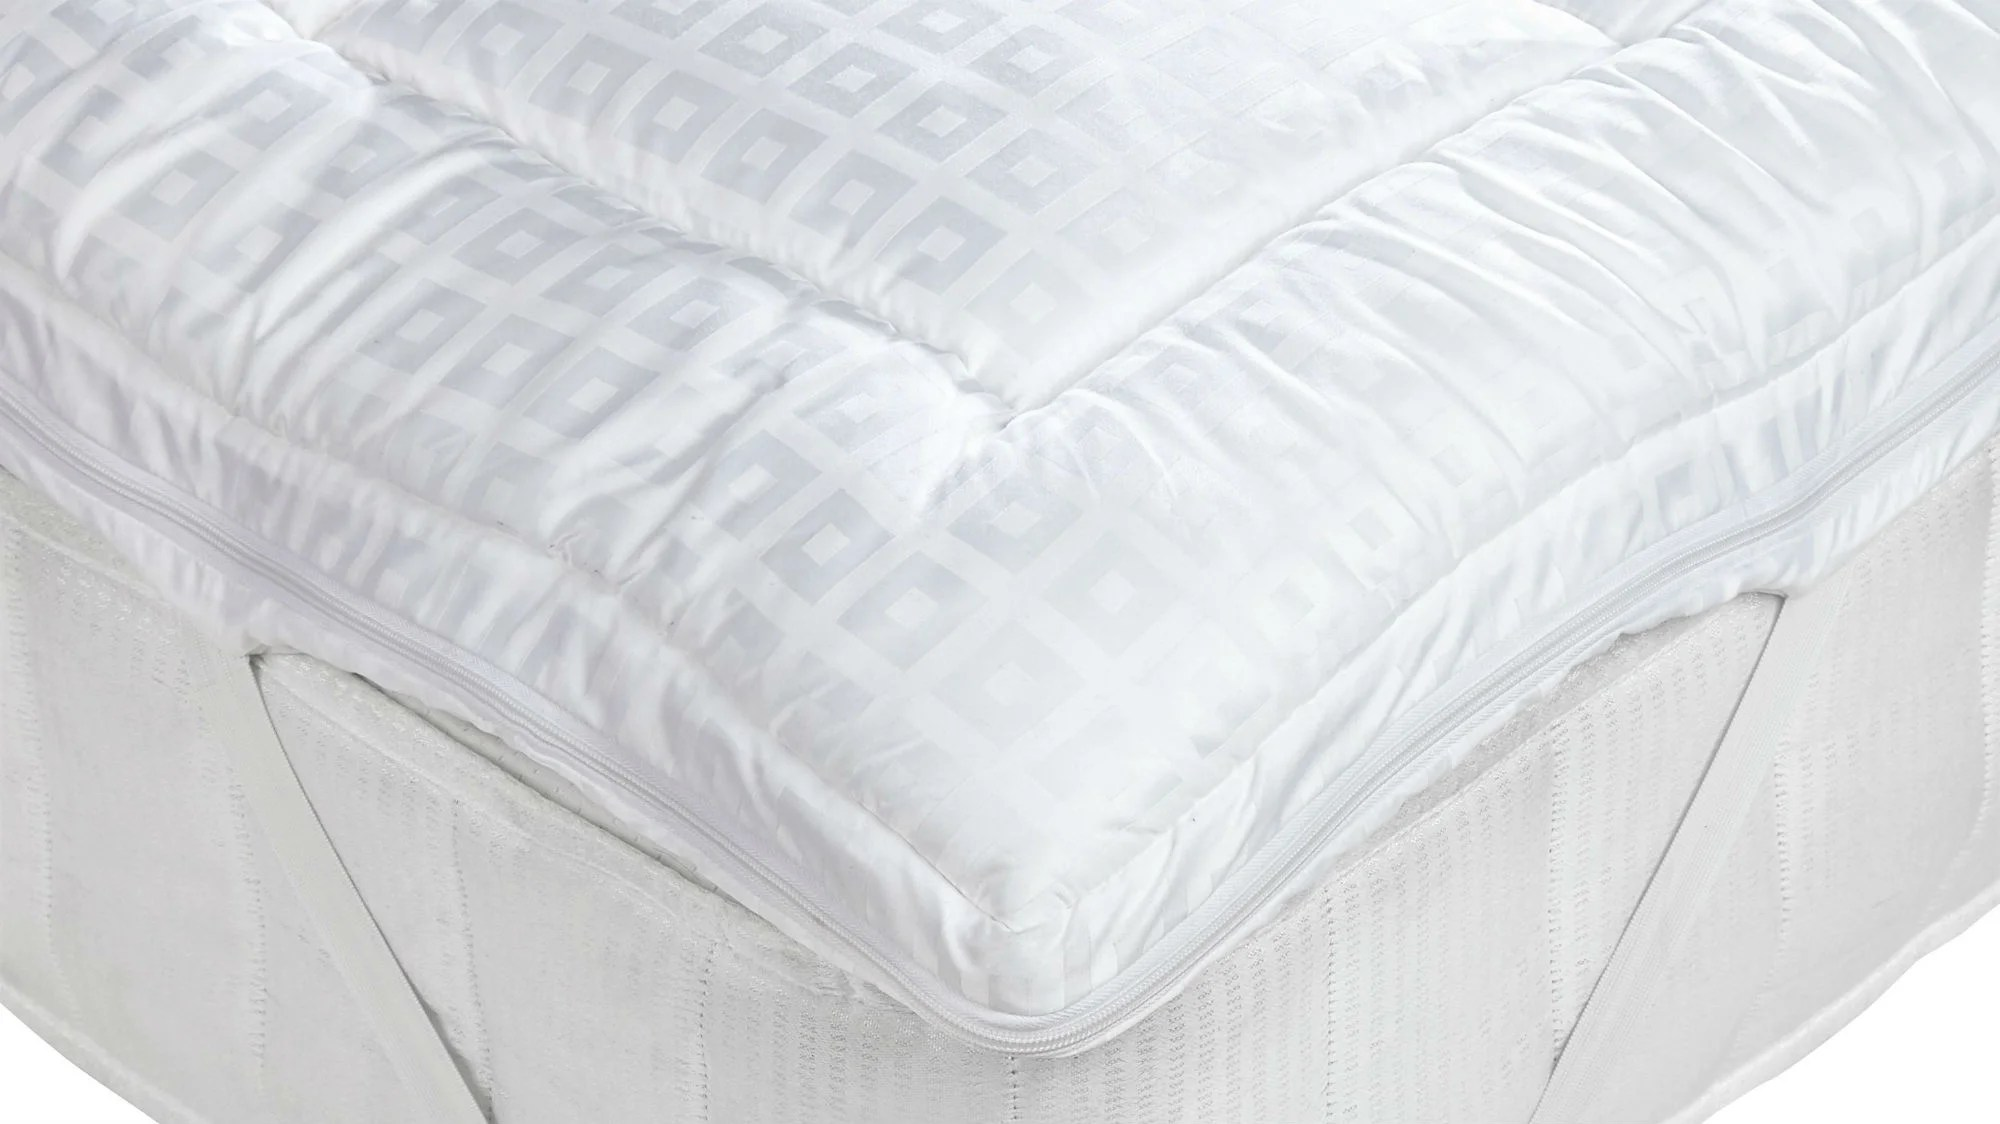 Mattress Topper Thick Best Mattress Topper Save 50 At Dormeo Right Now Expert Reviews